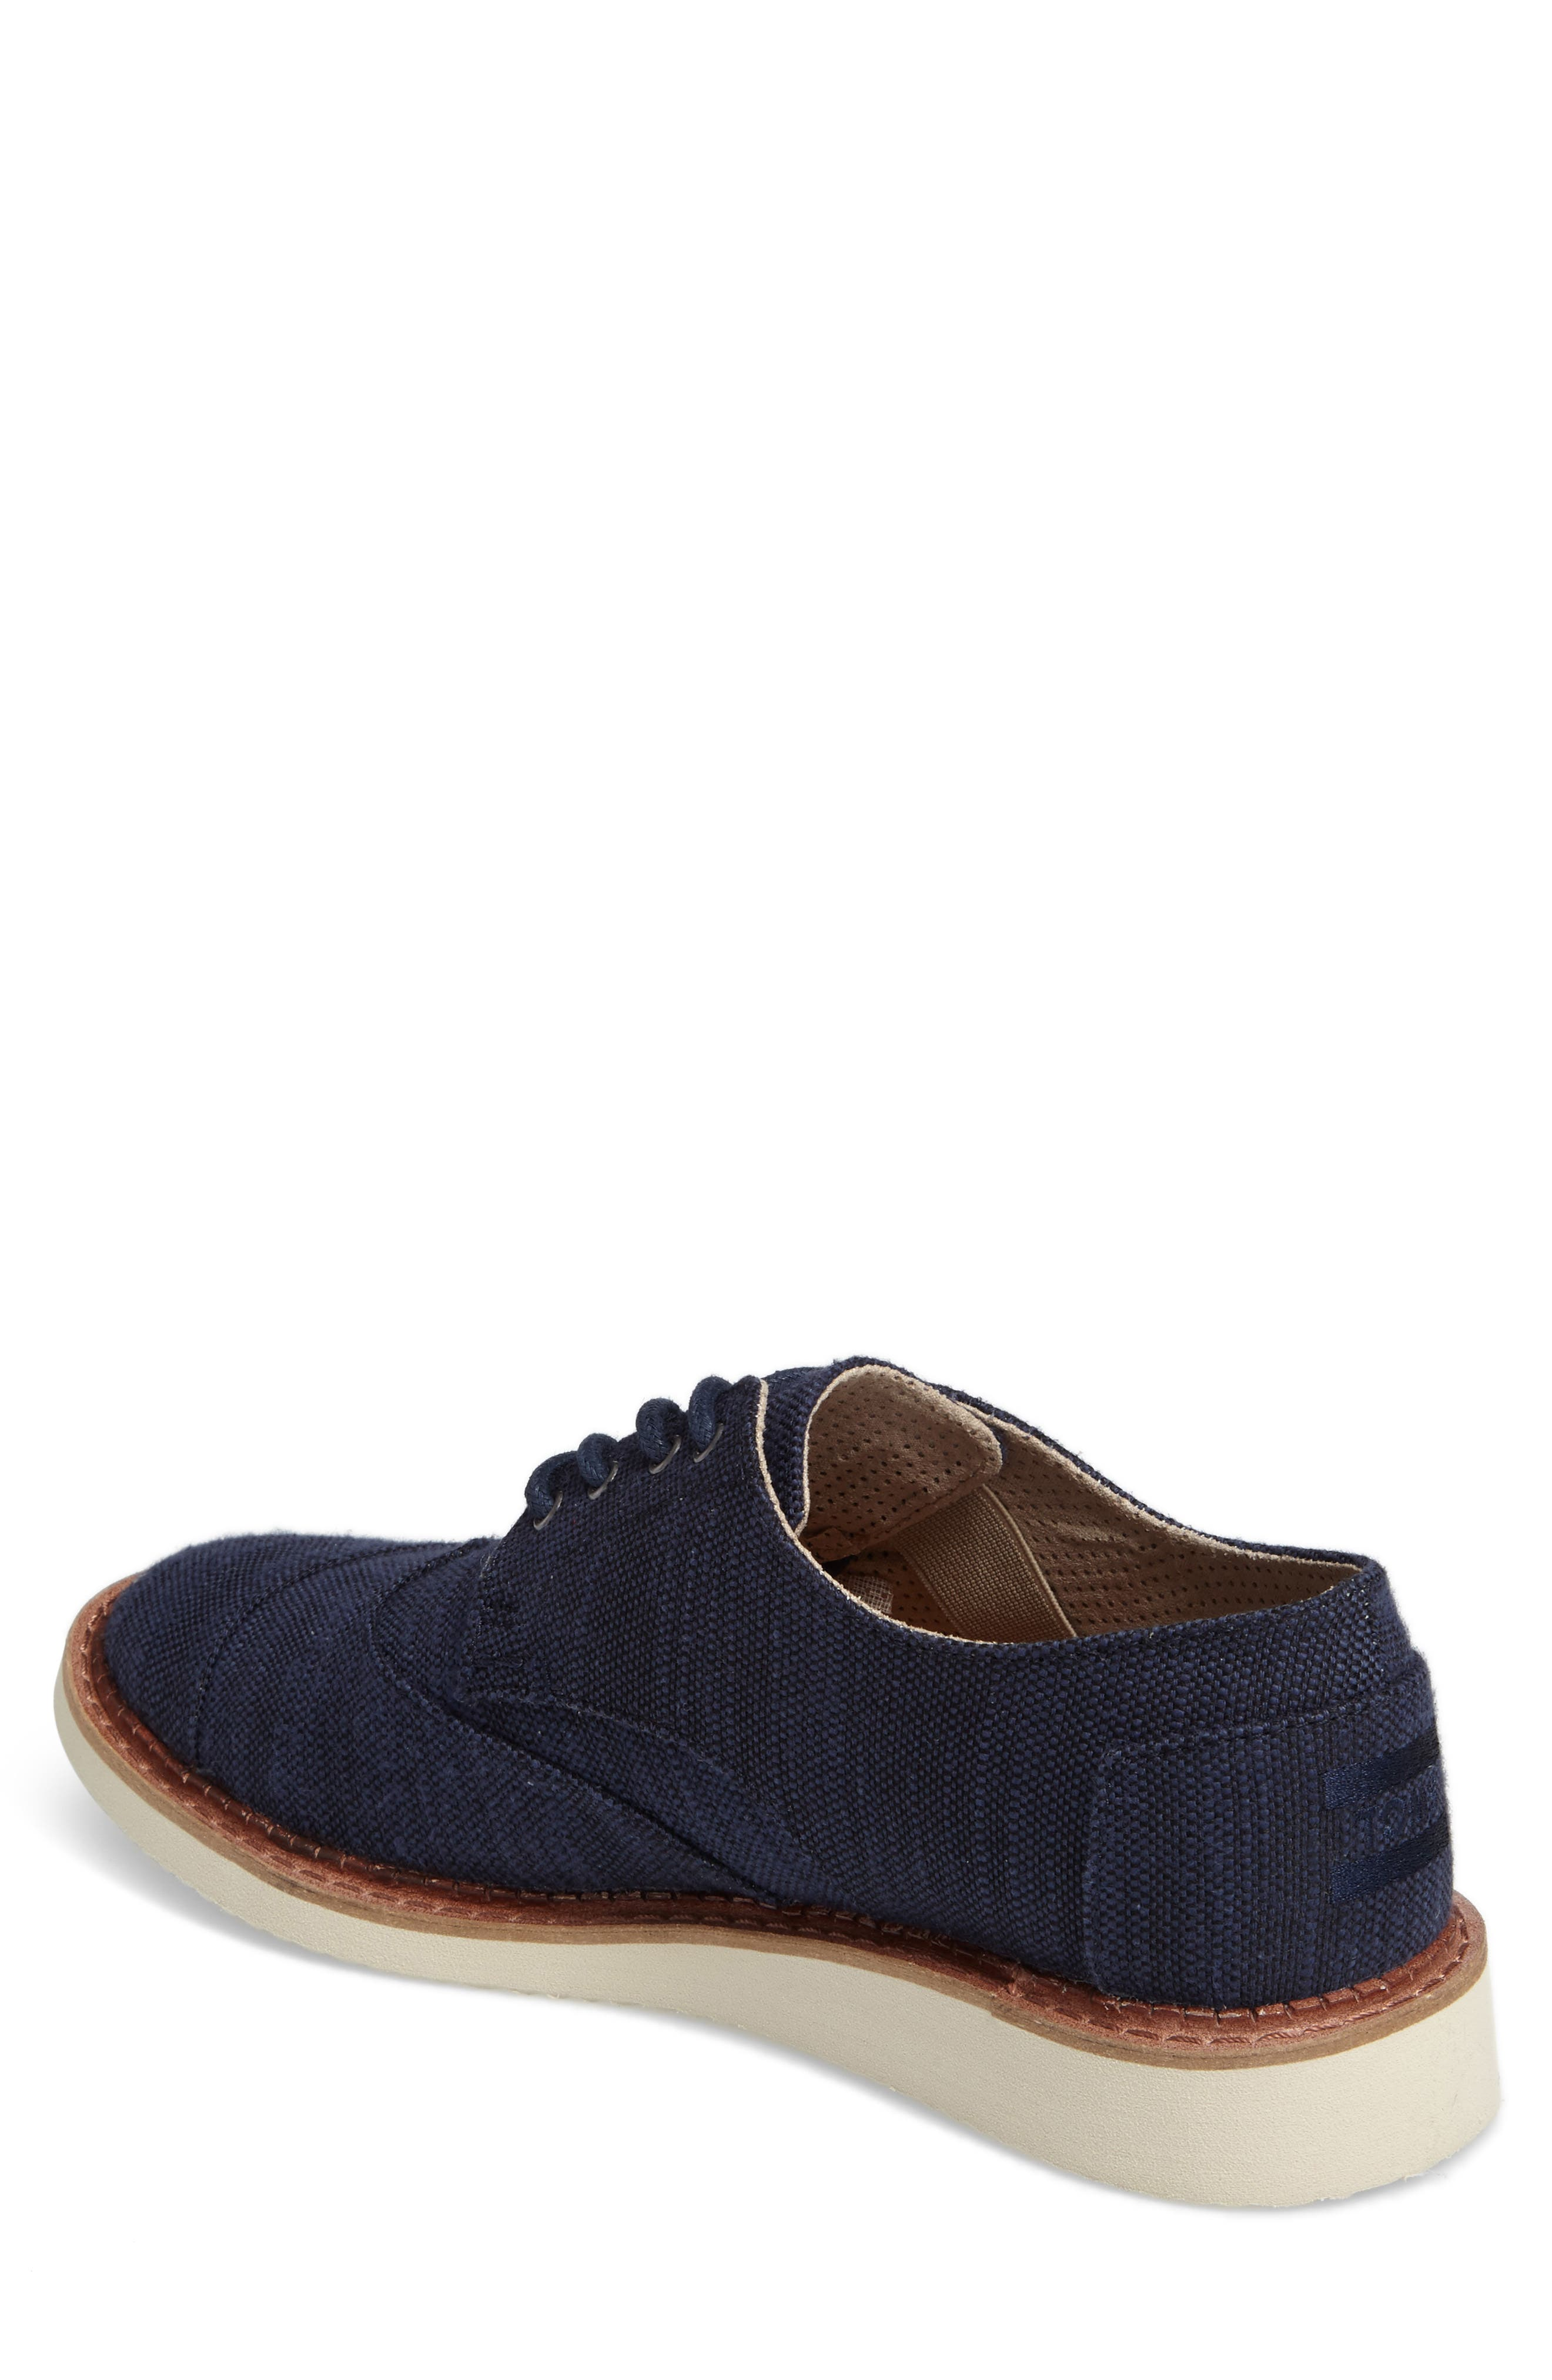 'Classic Brogue' Cotton Twill Derby,                             Alternate thumbnail 28, color,